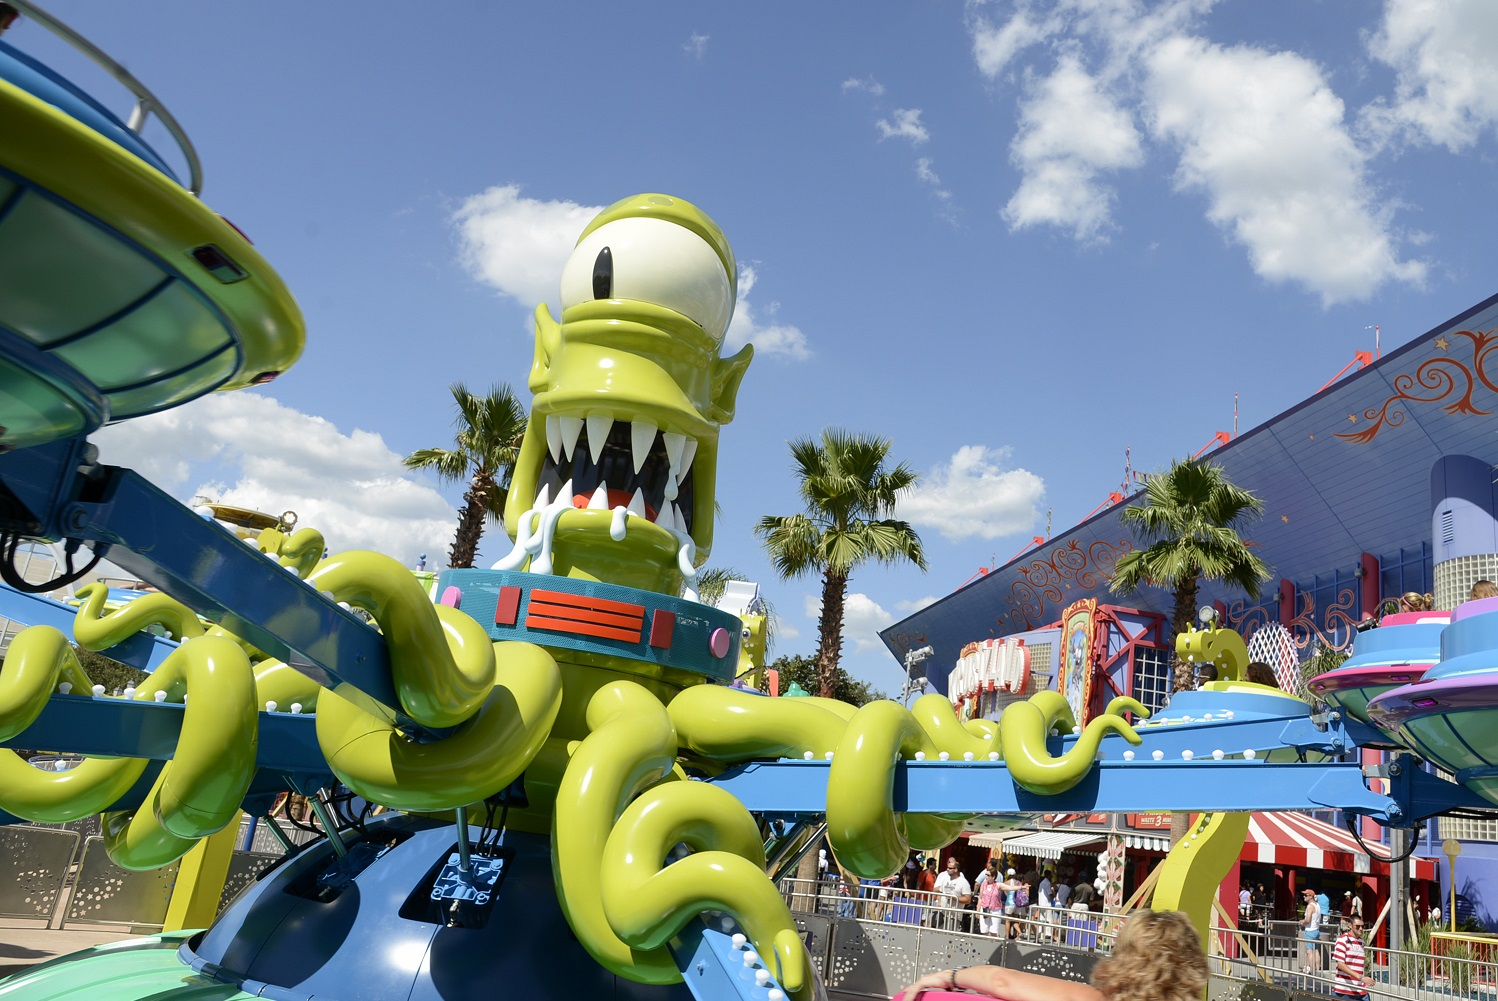 Read about Kang and Kodos' Twirl 'n' Hurl, a spinner ride located in Springfield U.S.A.